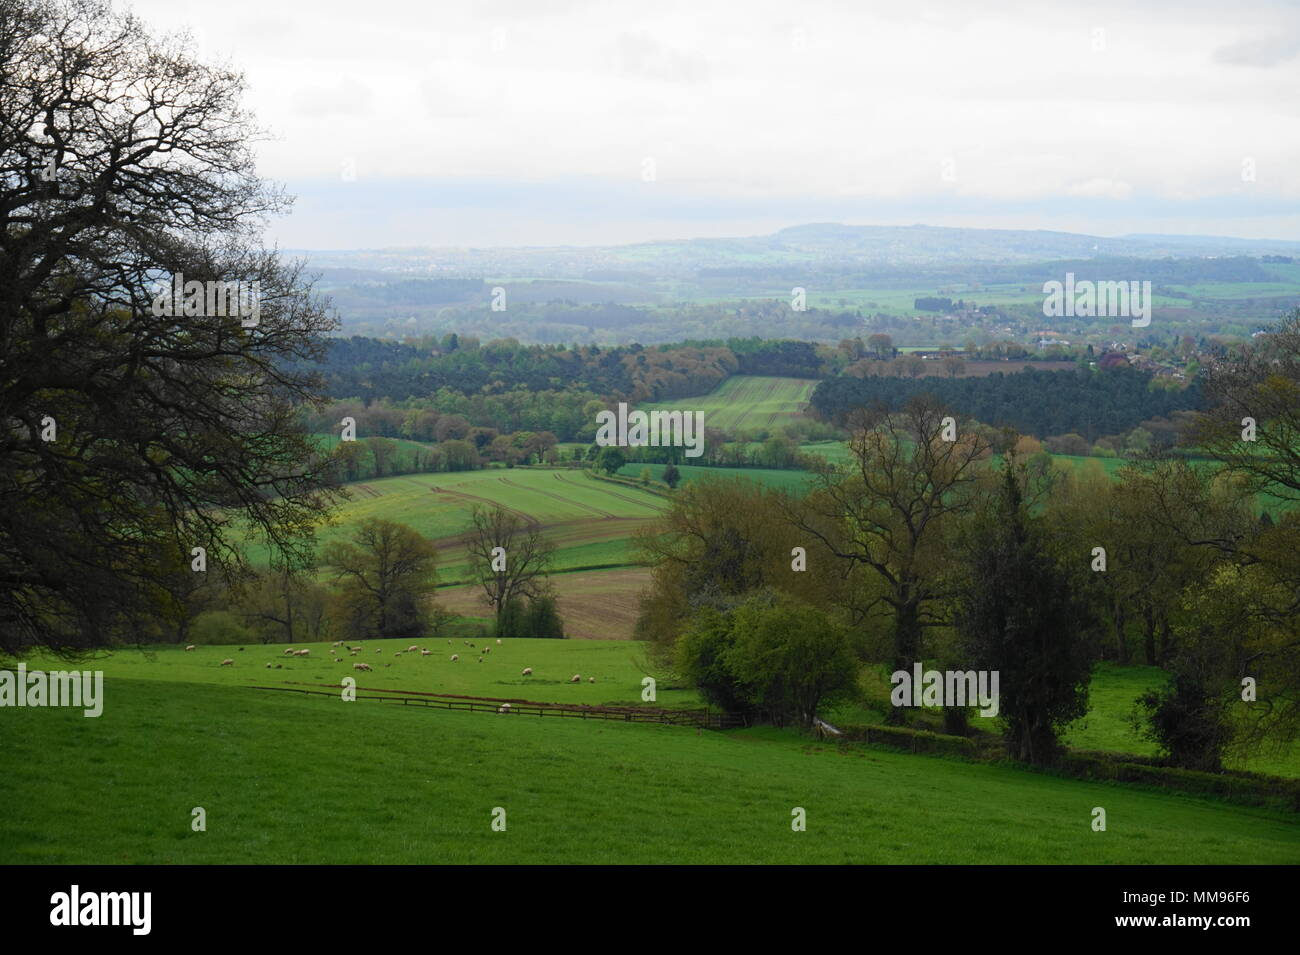 View of Staffordshire Moorlands from a hill near Enville - Stock Image